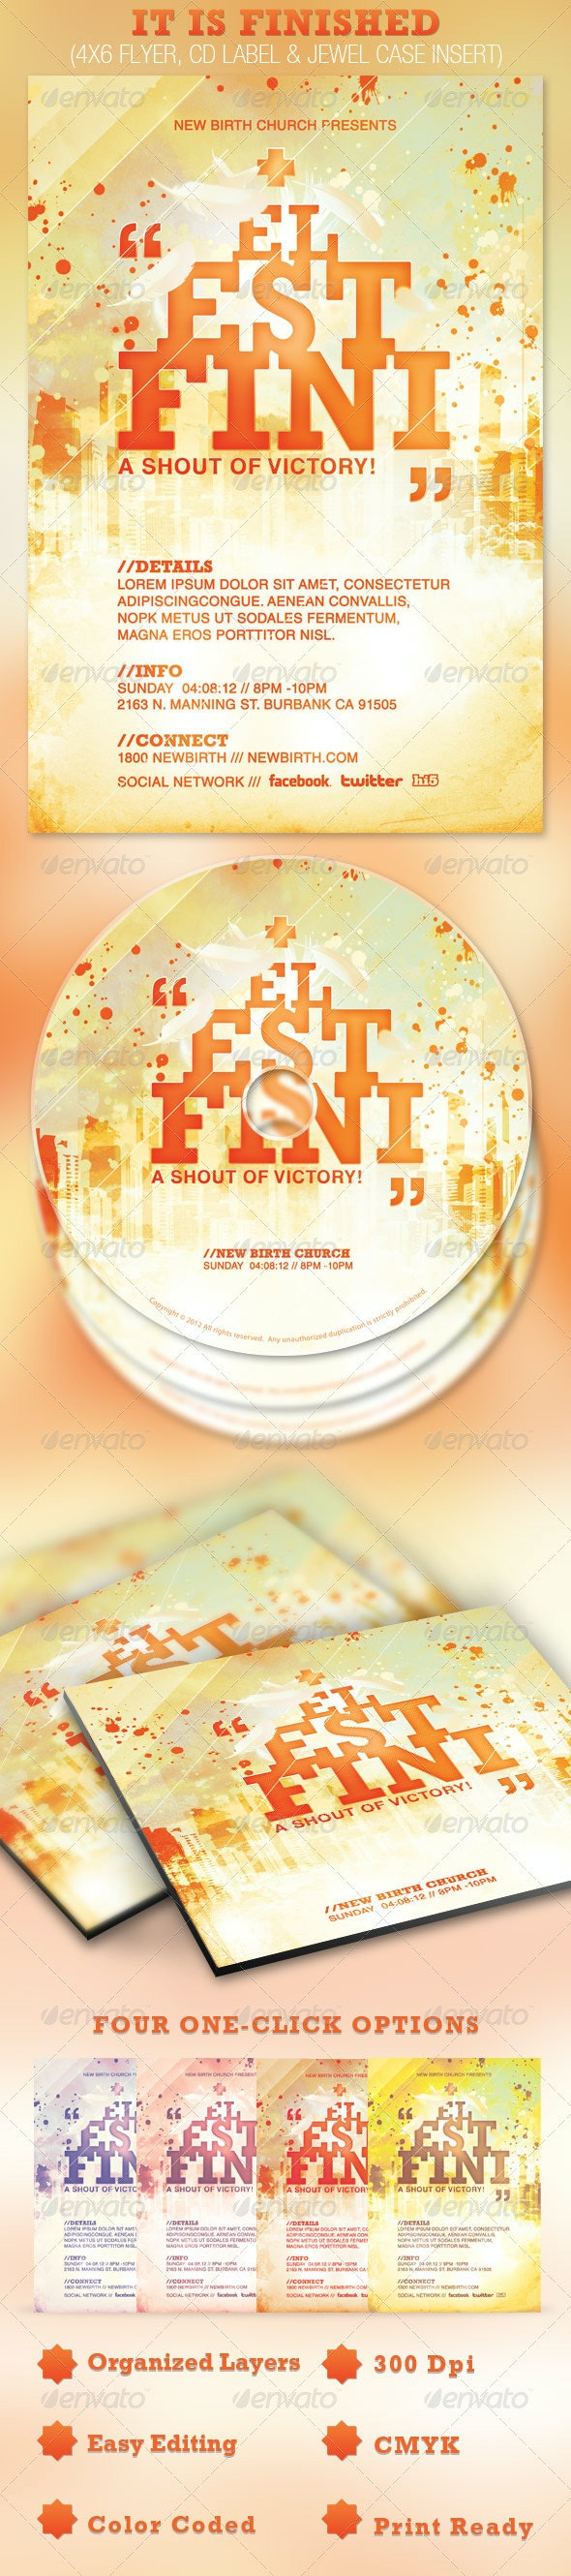 It is Finished Church Flyer and CD Template - Church Flyers